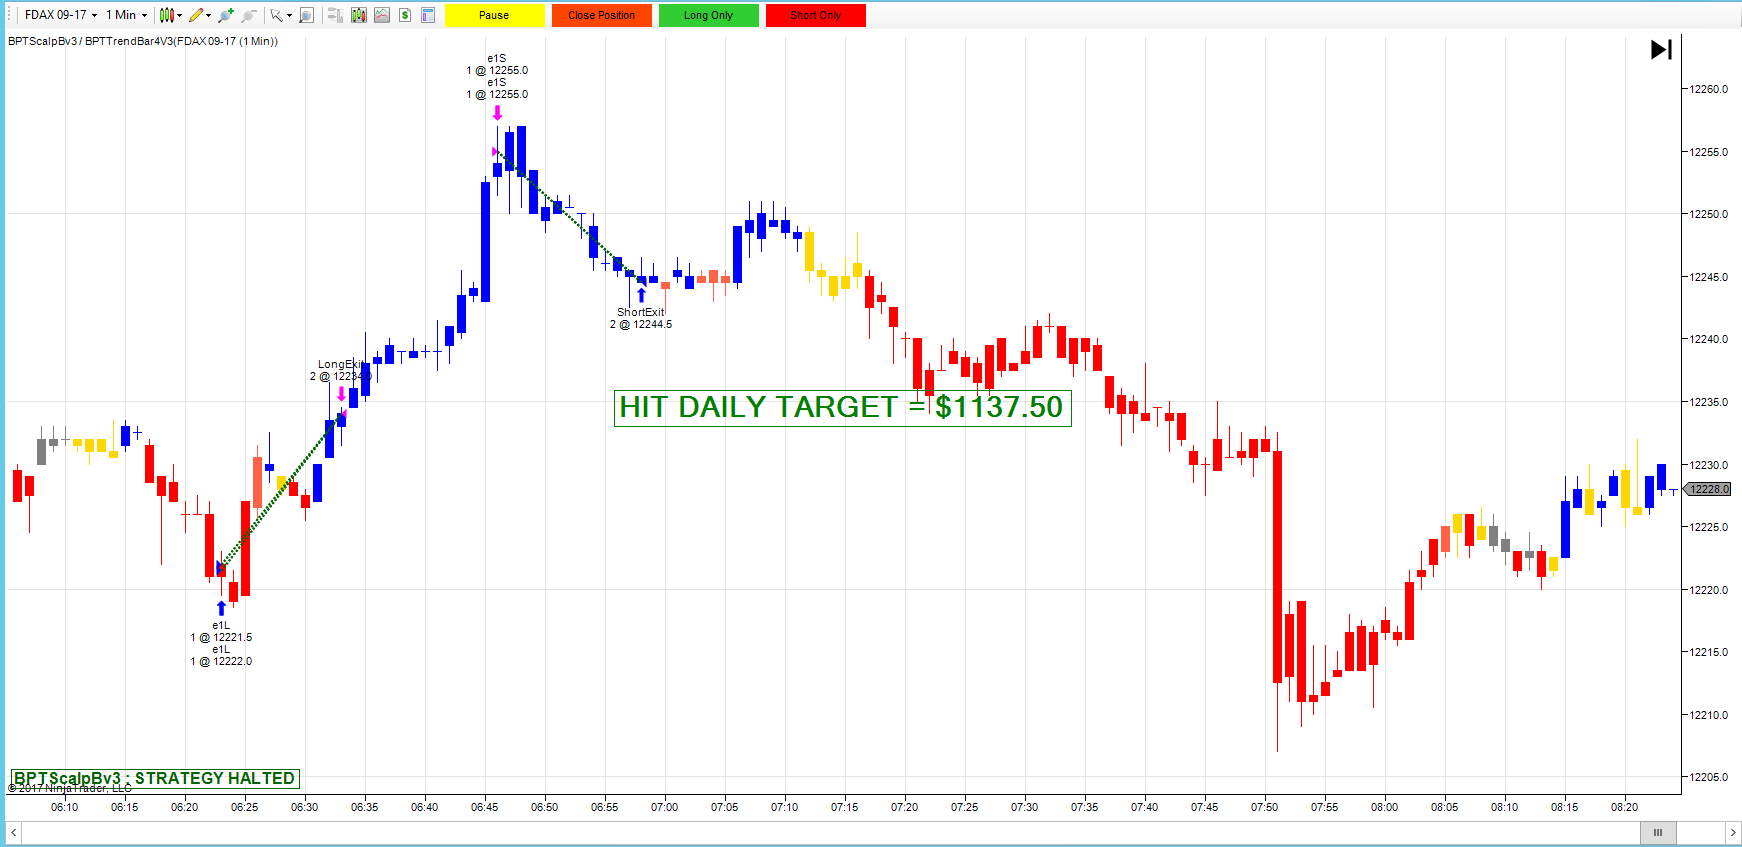 Automatic day trading strategies